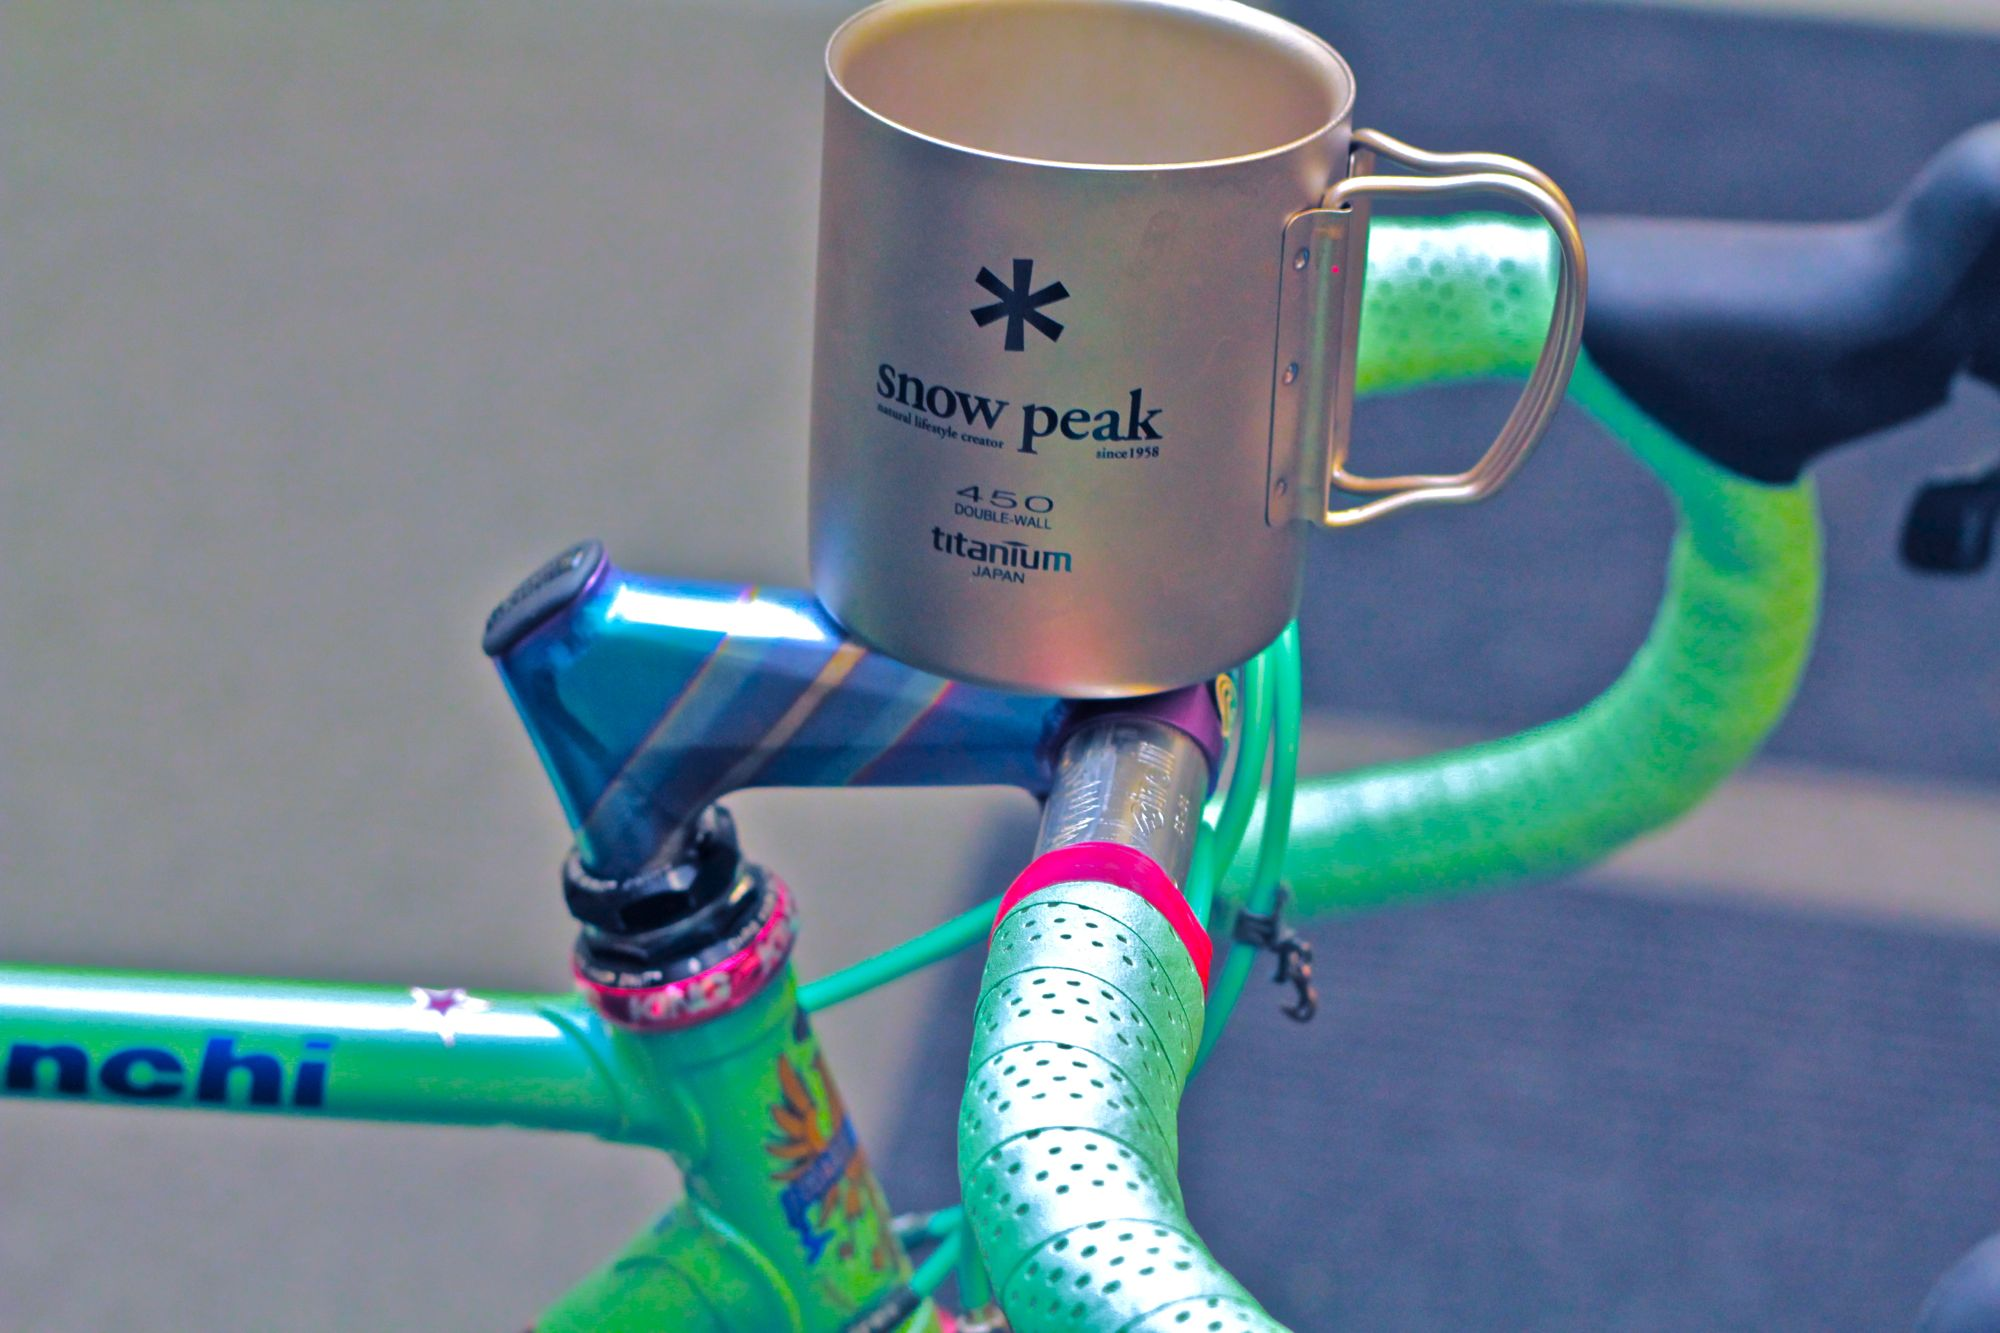 Cinelli Grammo Art stem & Snow Peak titanium mug